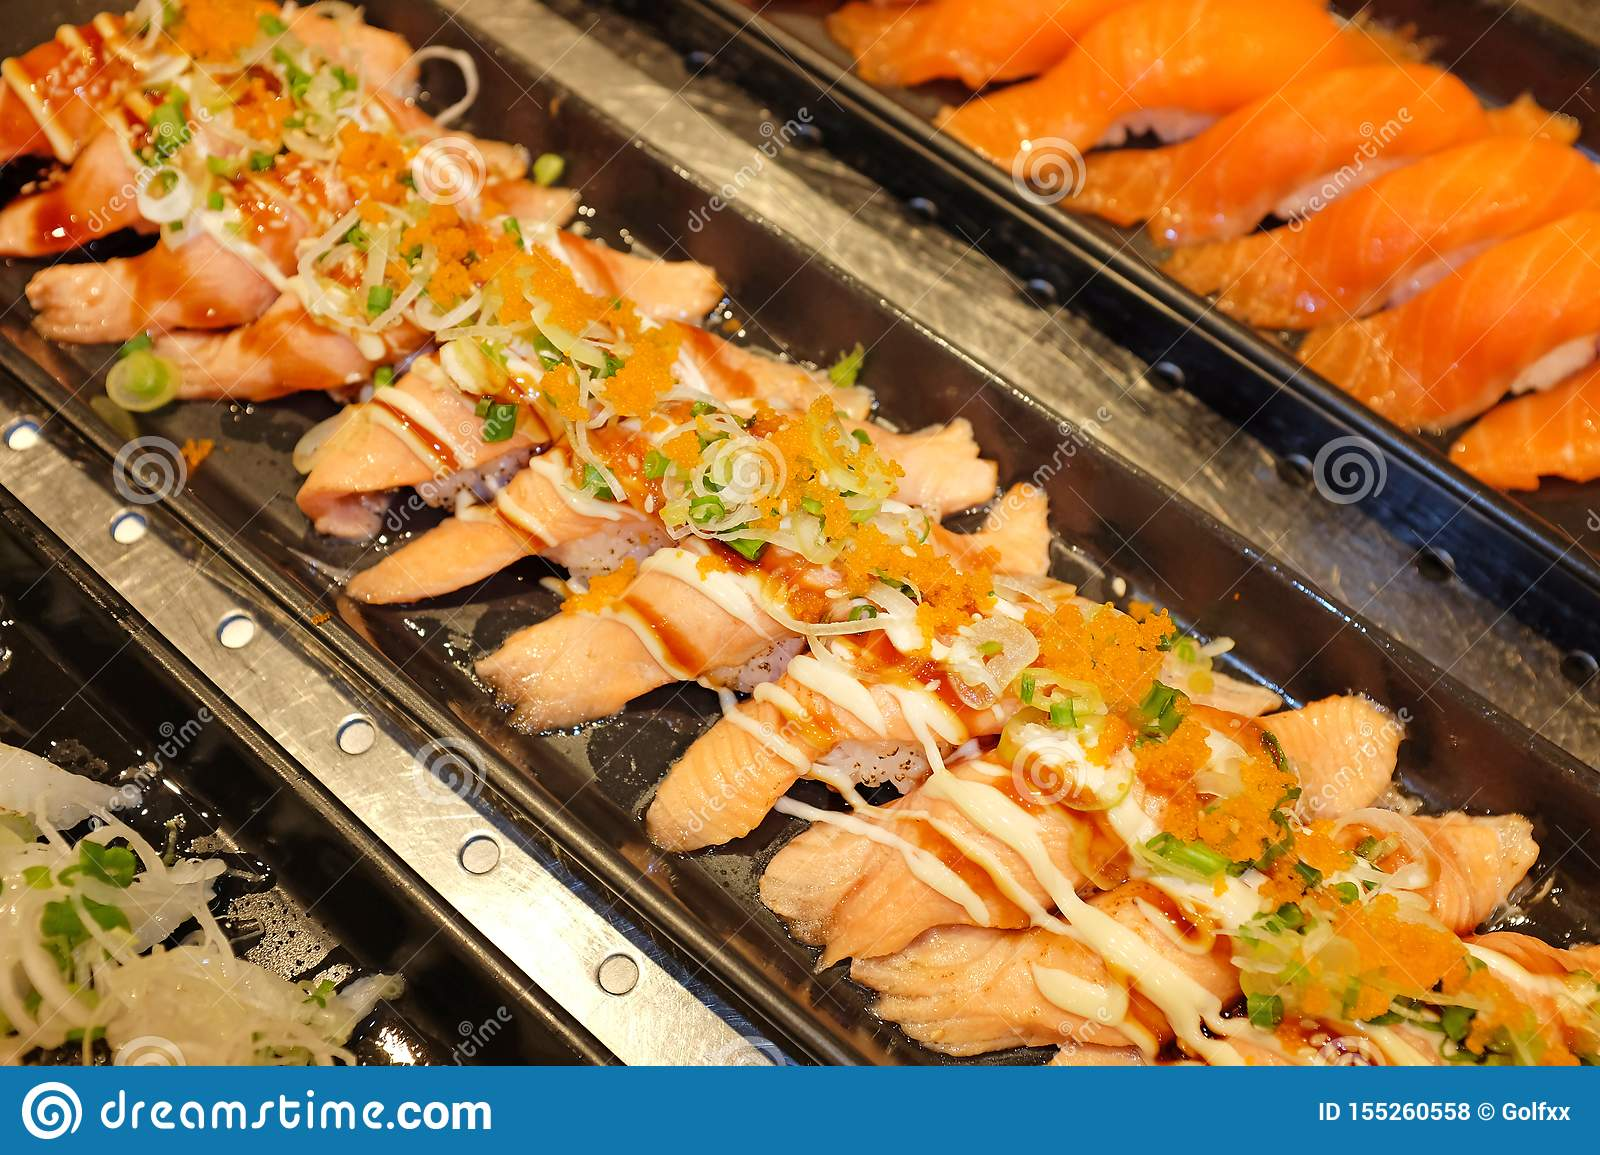 453 Aburi Salmon Photos Free Royalty Free Stock Photos From Dreamstime